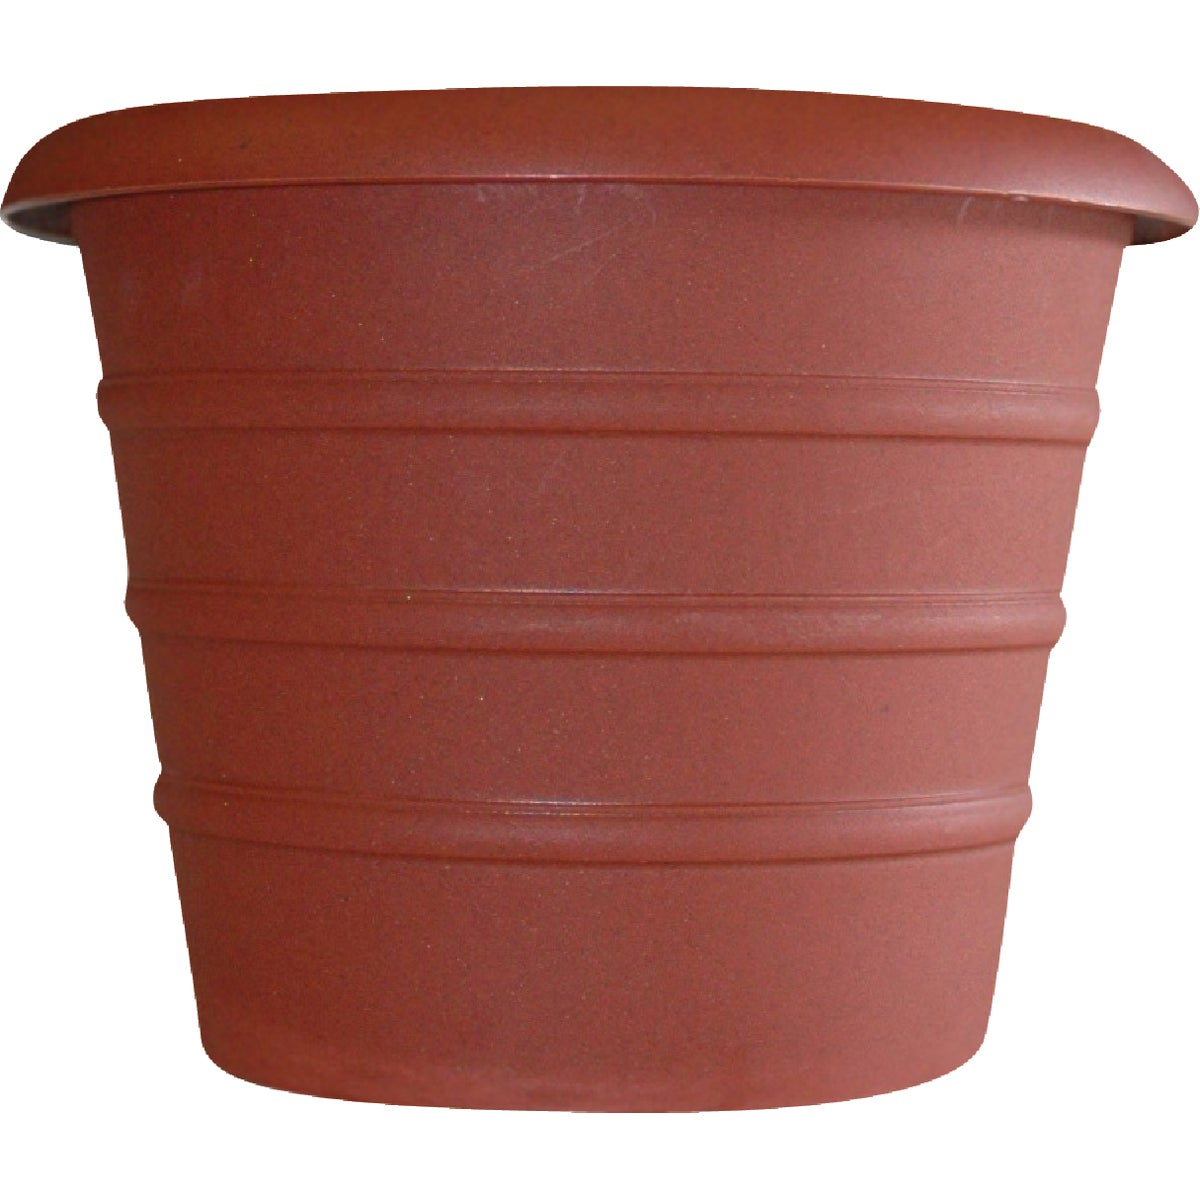 "16""T COTTA MARINA POT - MSA16001E07 by Myers Industries Inc"